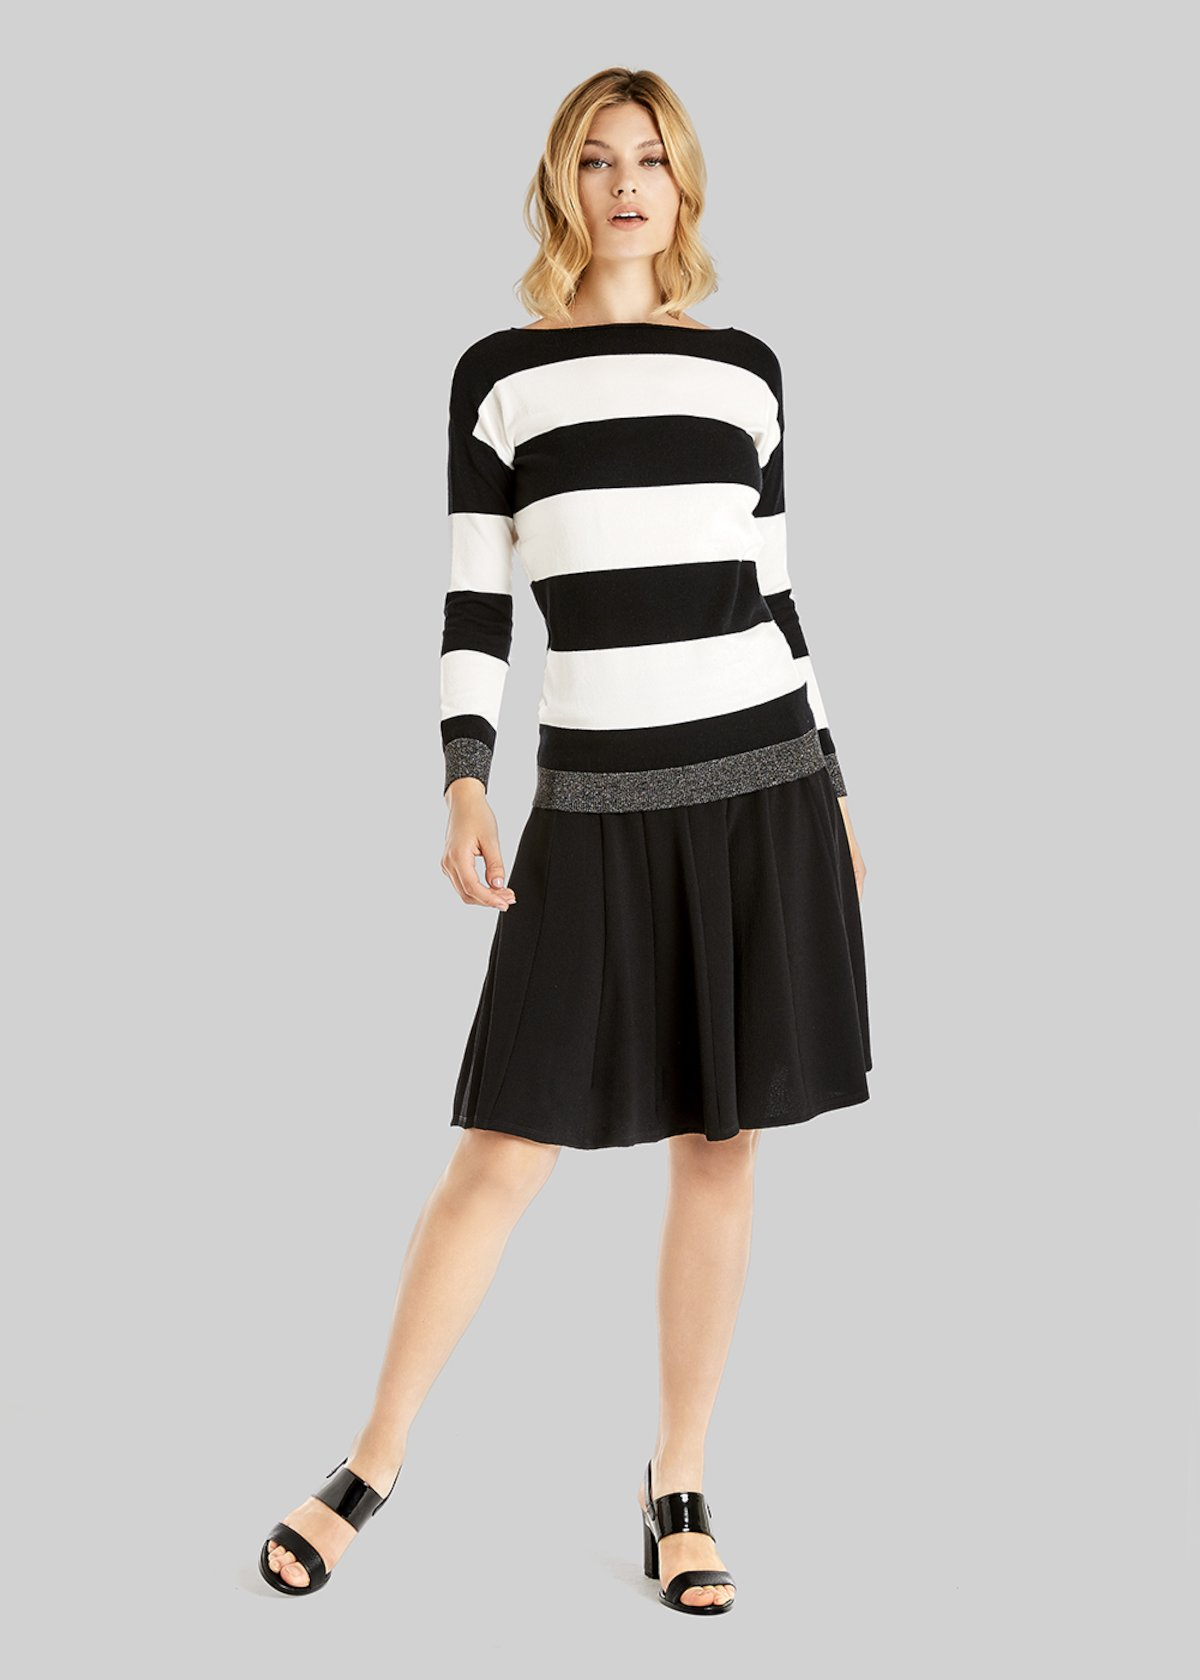 Maryjane Boat neck long sleeved shirt - White / Black Stripes